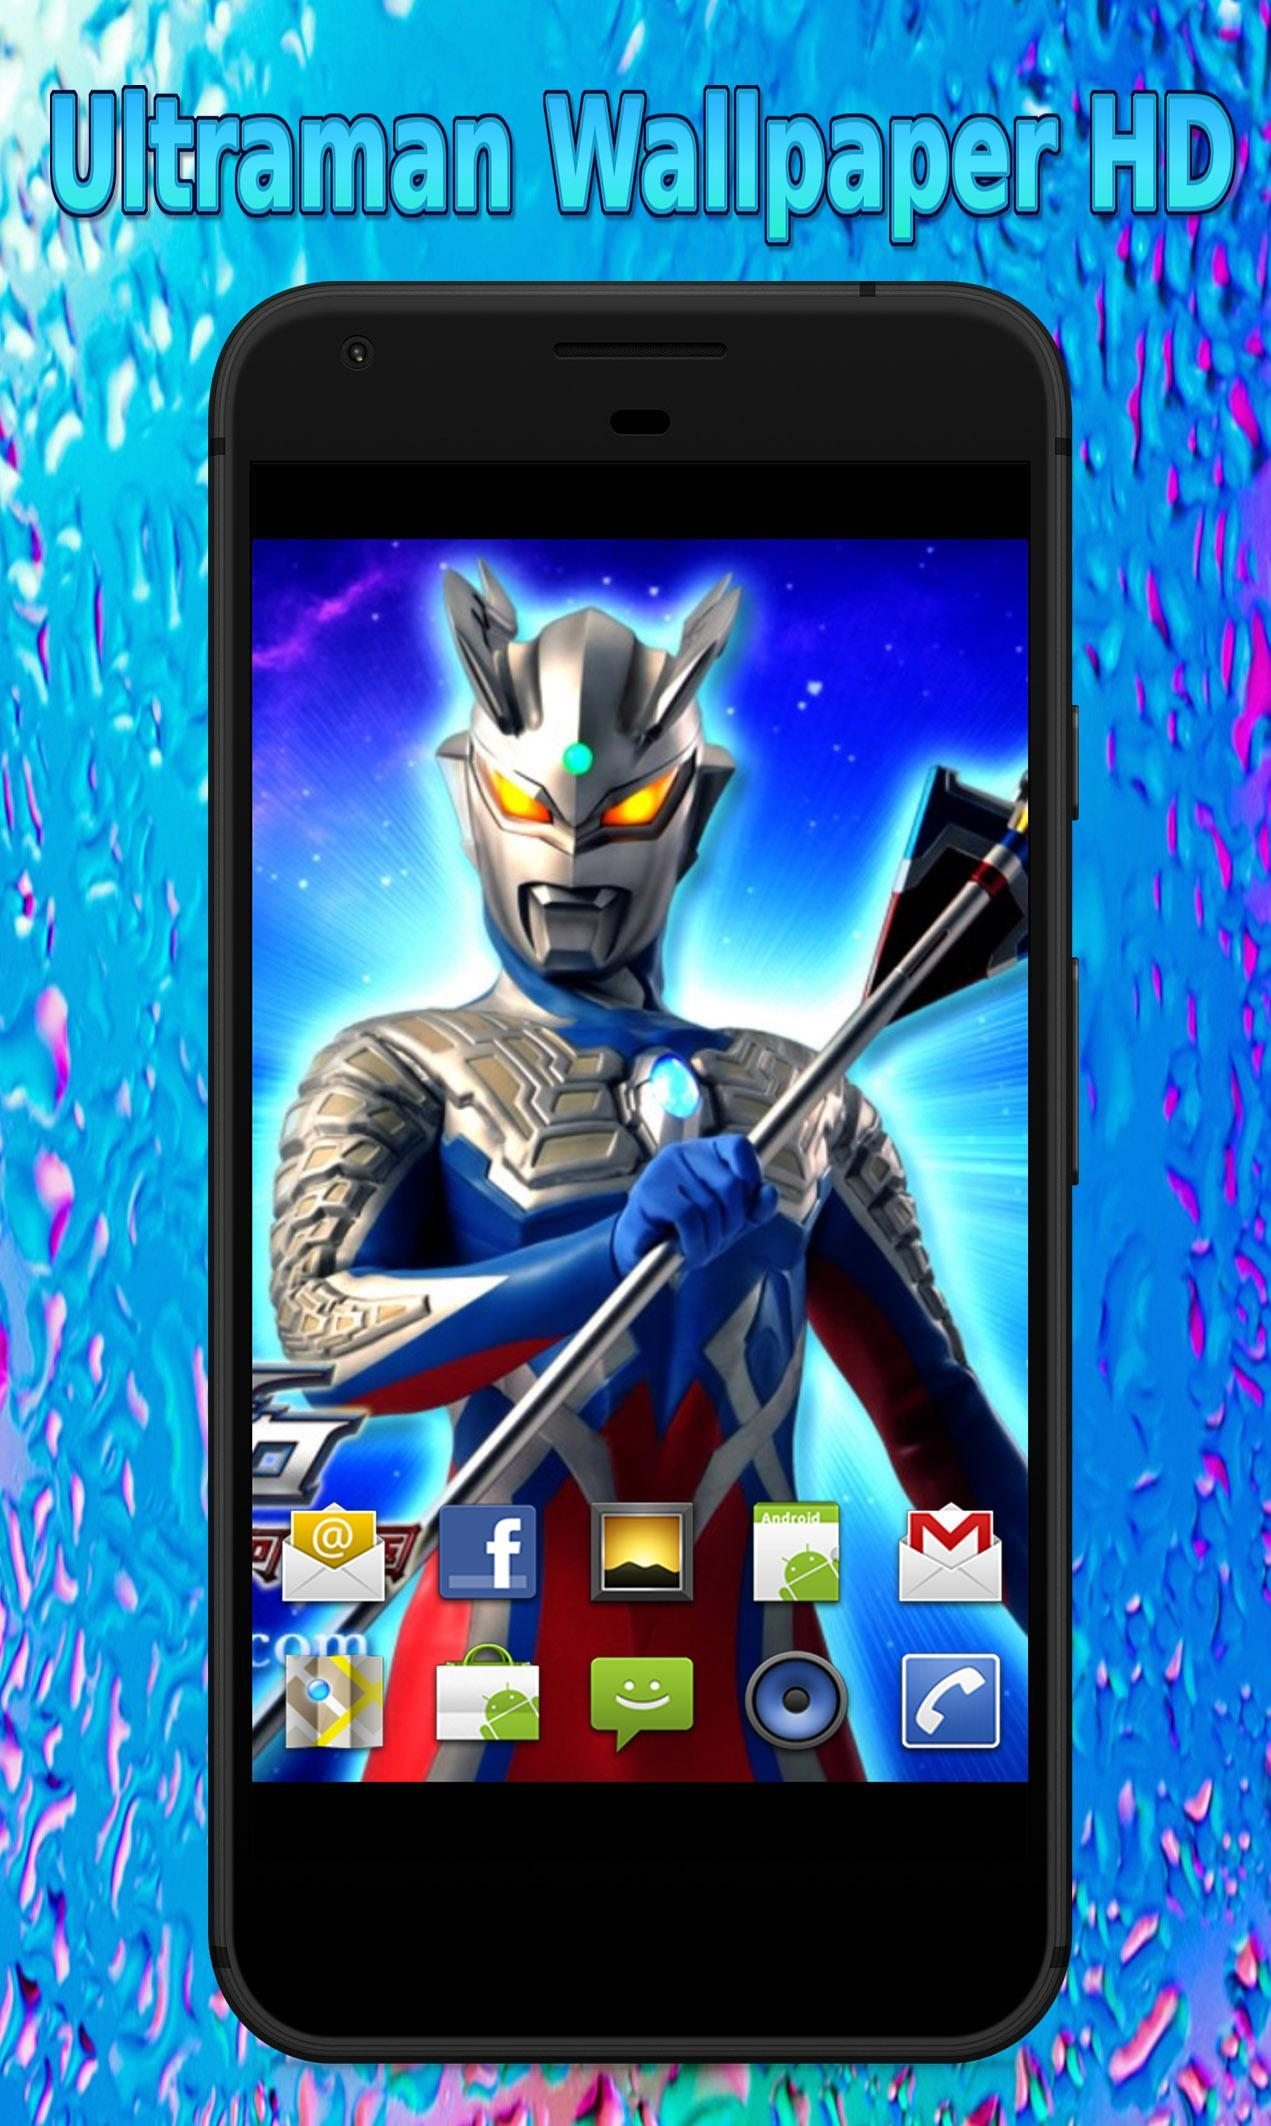 Ultraman Wallpaper HD poster